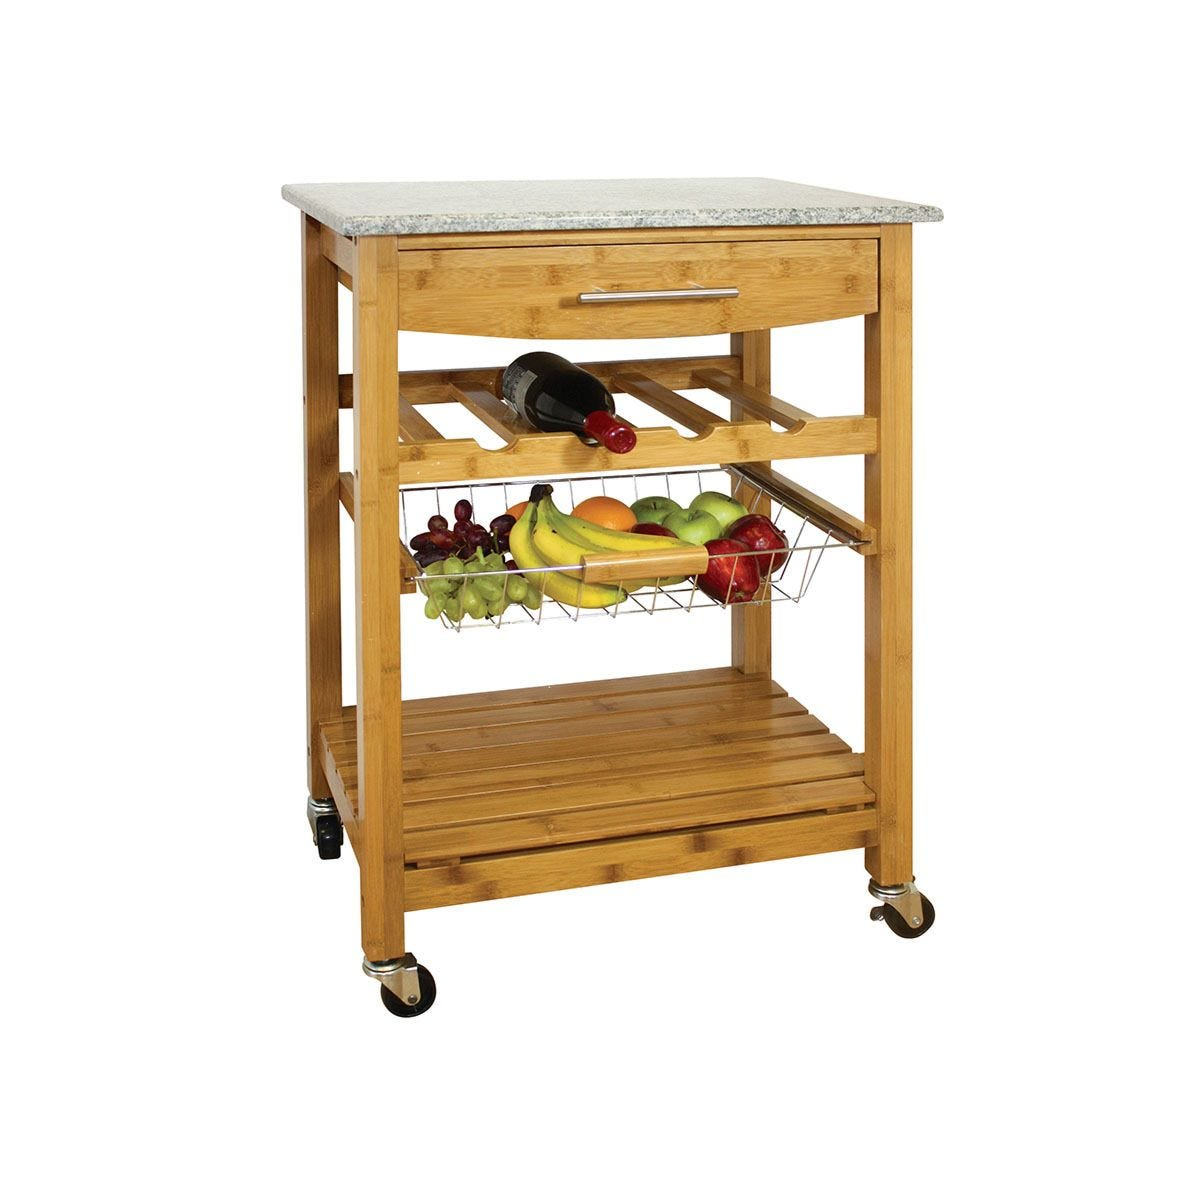 Robert Dyas Bamboo Kitchen Trolley with Granite Top - Brown